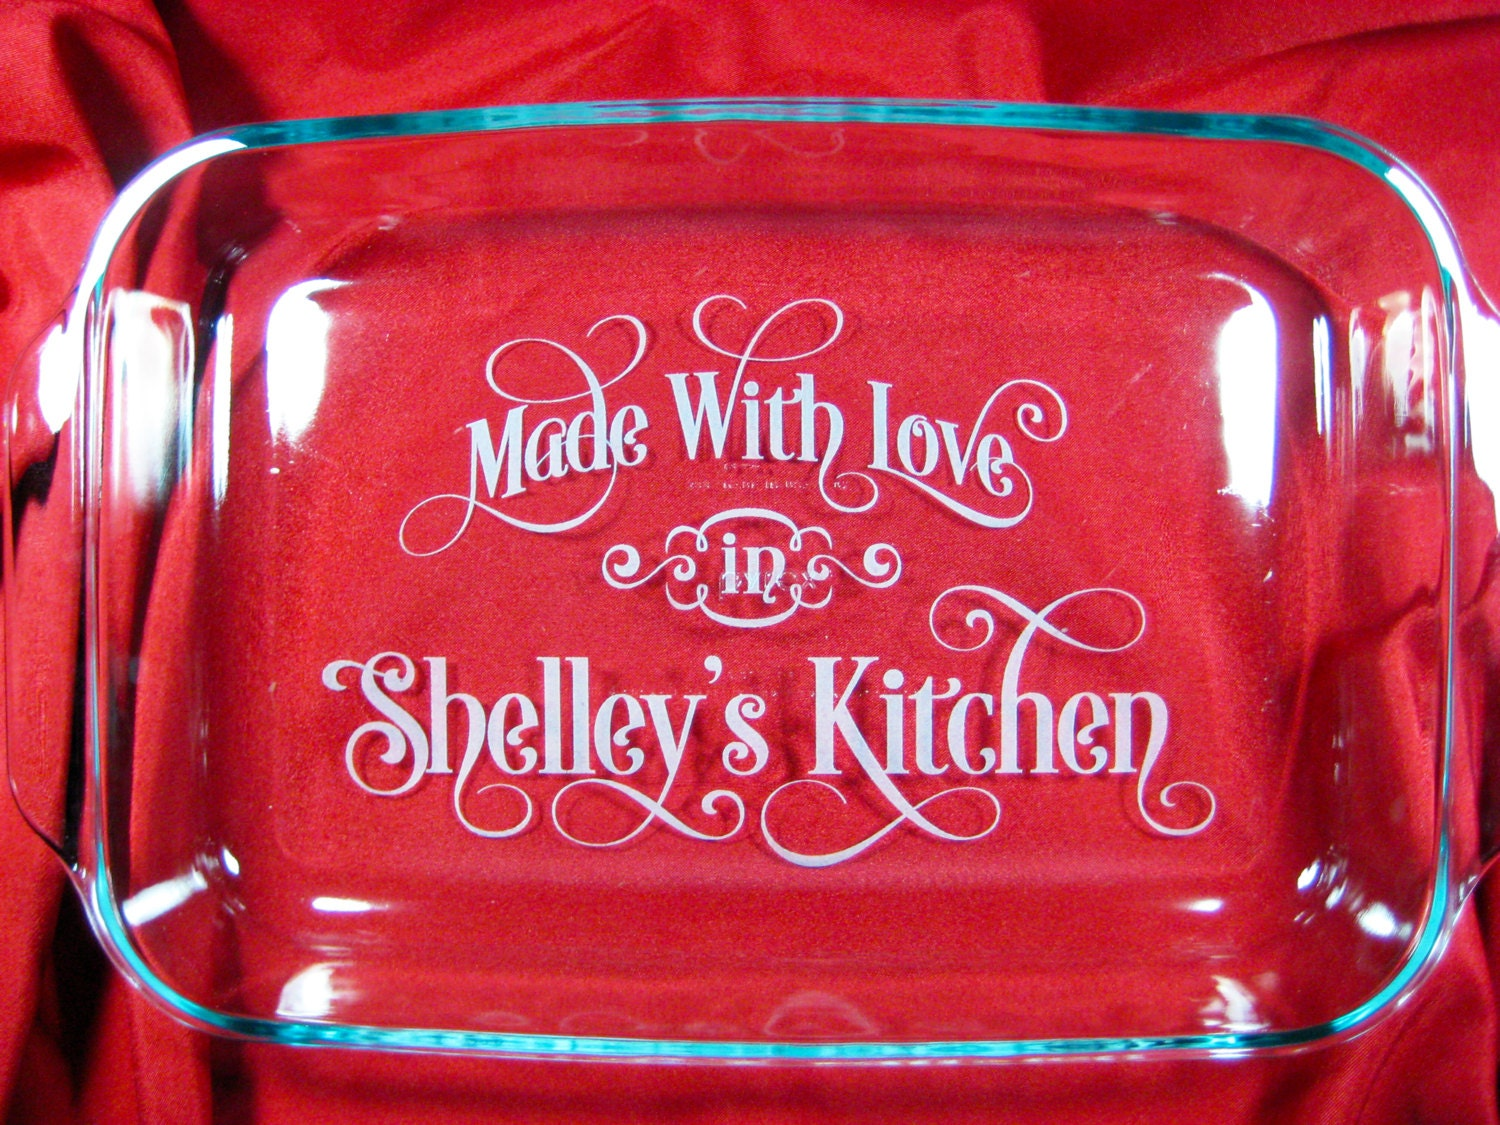 Personalized 9x13 Pyrex Baking Dish Made With